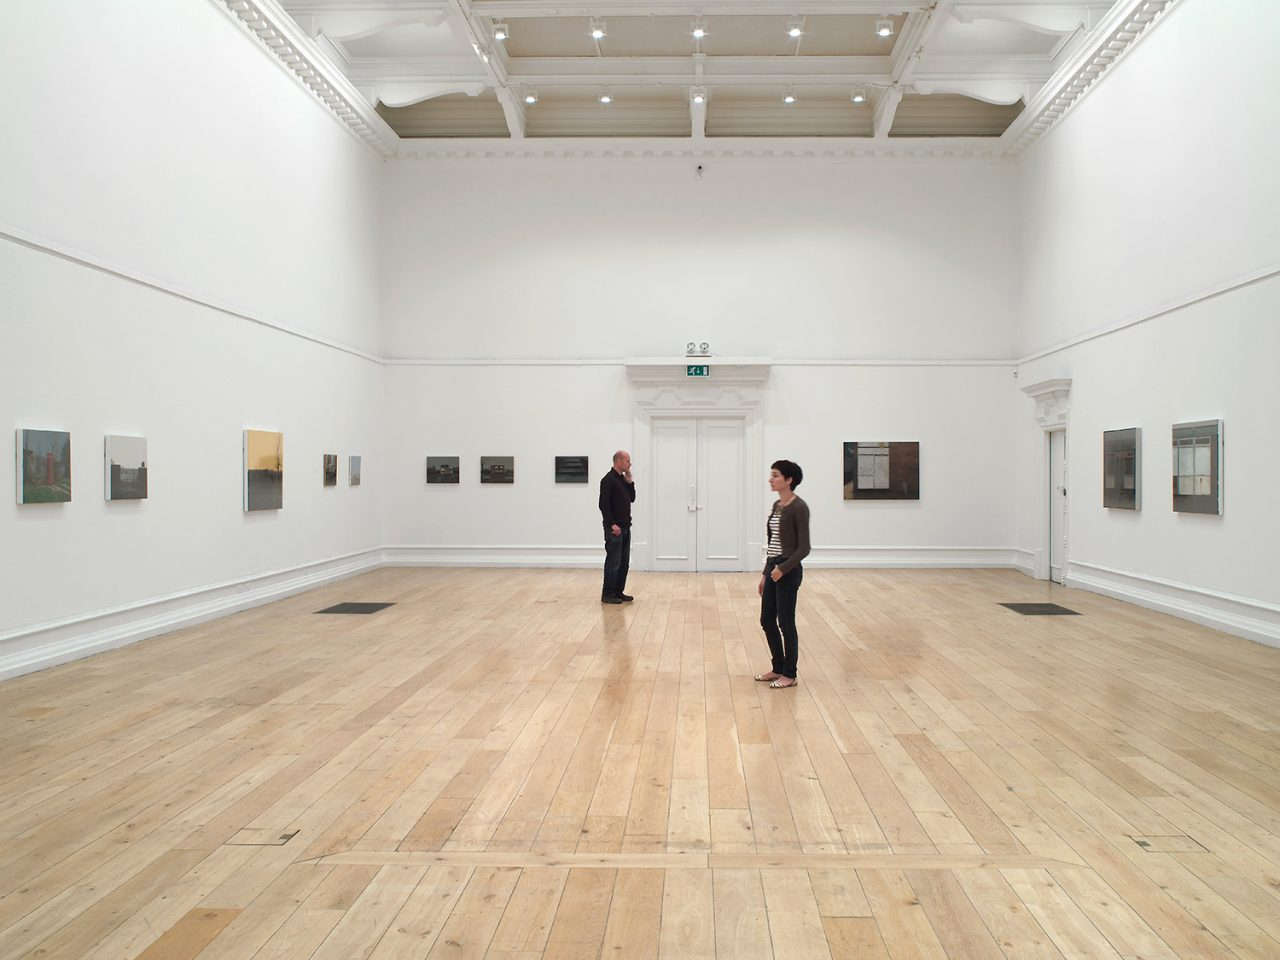 People visiting George Shaw's 2011 exhibition The Sly and Unseen Day in the Main Galleries. Photo: Andy Keate